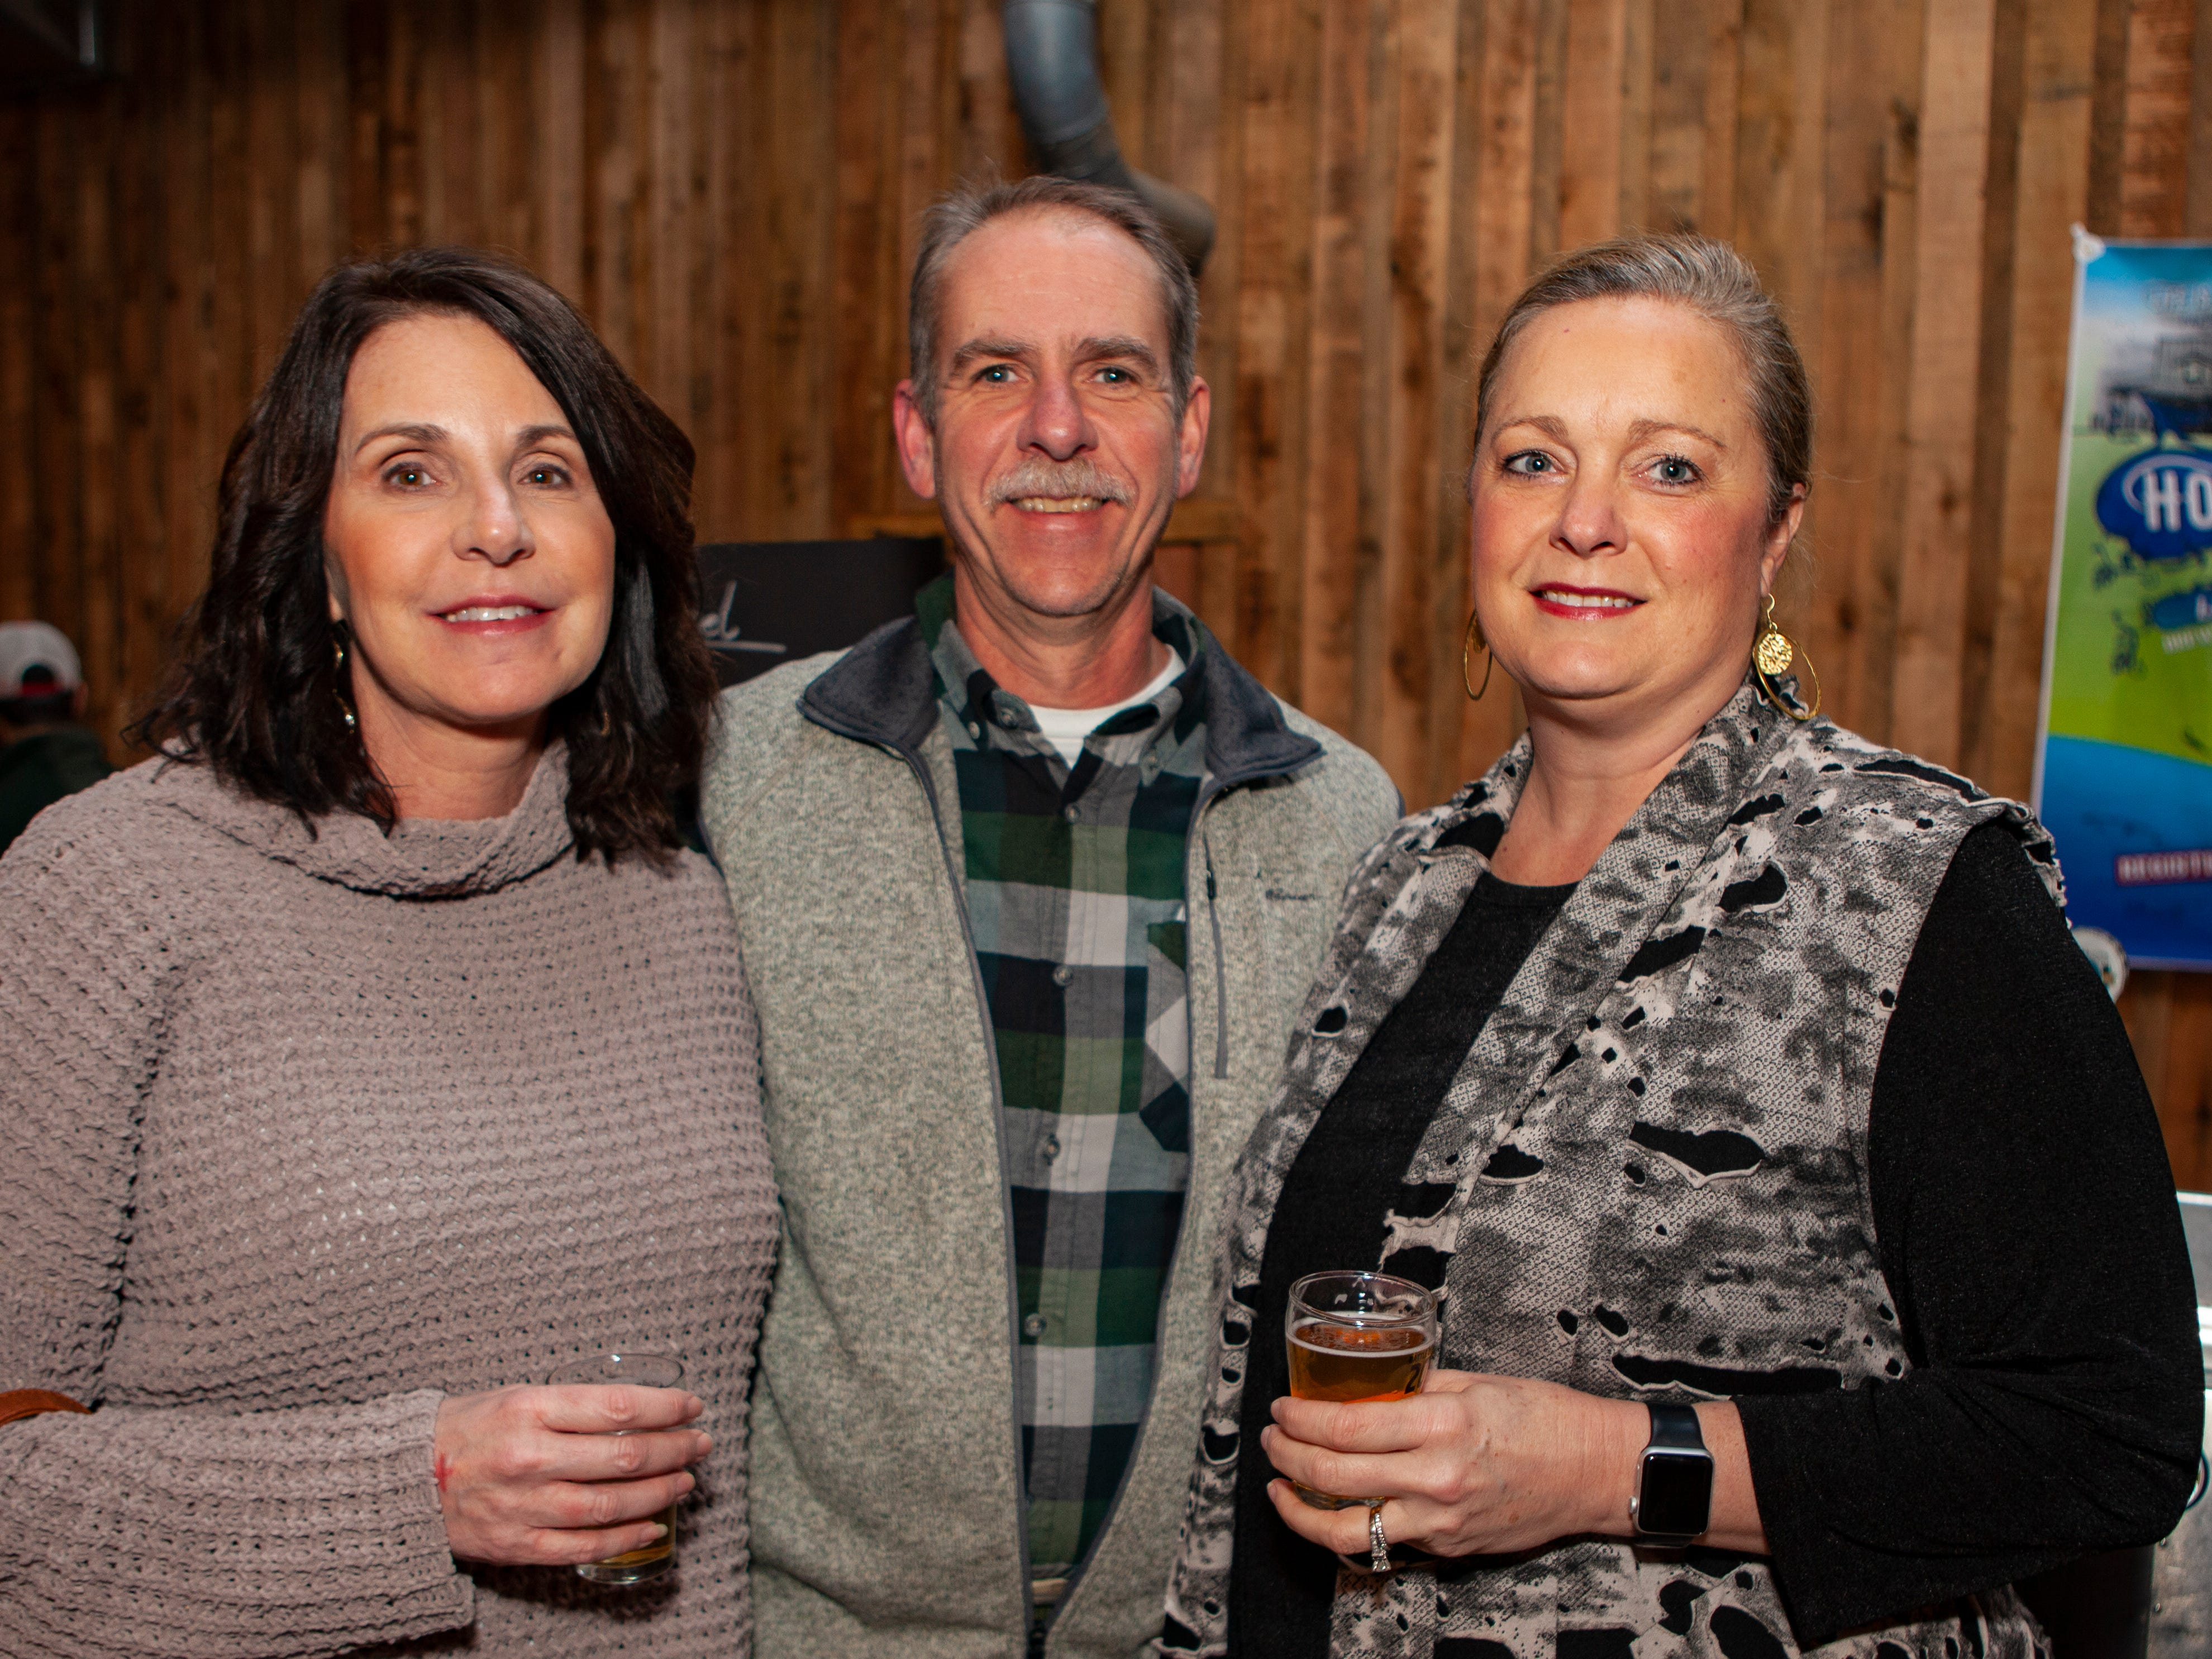 Lisa and Gary Wilson with Denise Flanagan at the third annual Battle of the Brews, a benefit for Kymari House Inc., held Saturday, Feb. 9, 2019 at The Grove at Williamson Place in Murfreesboro.